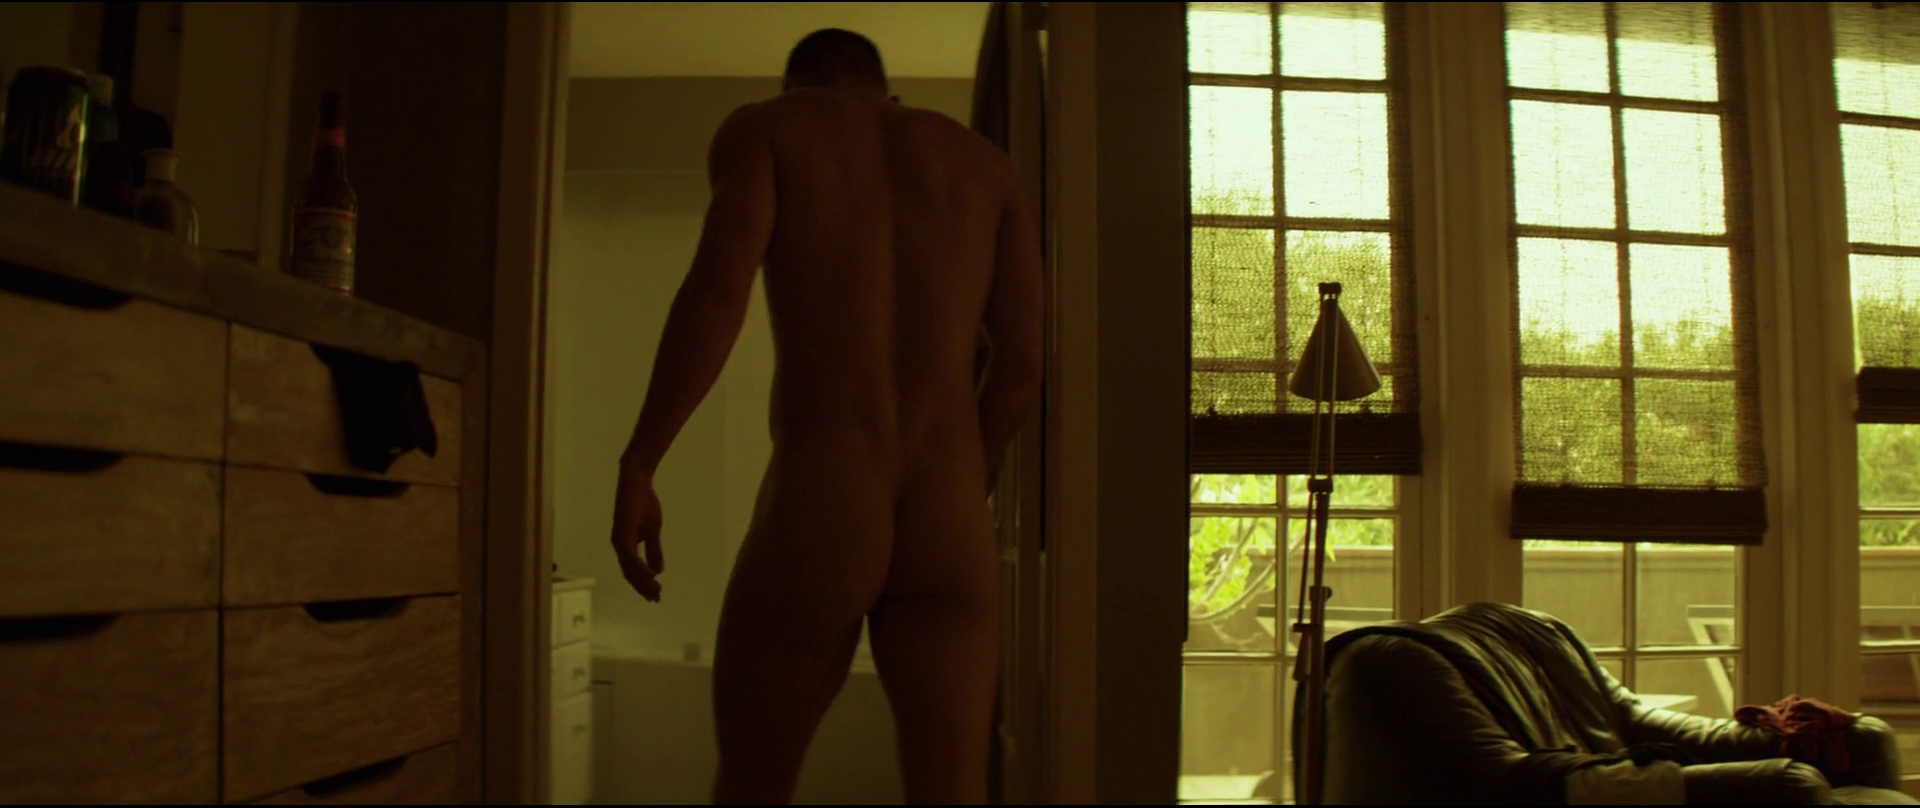 This naked photo of channing tatum may flood your basement